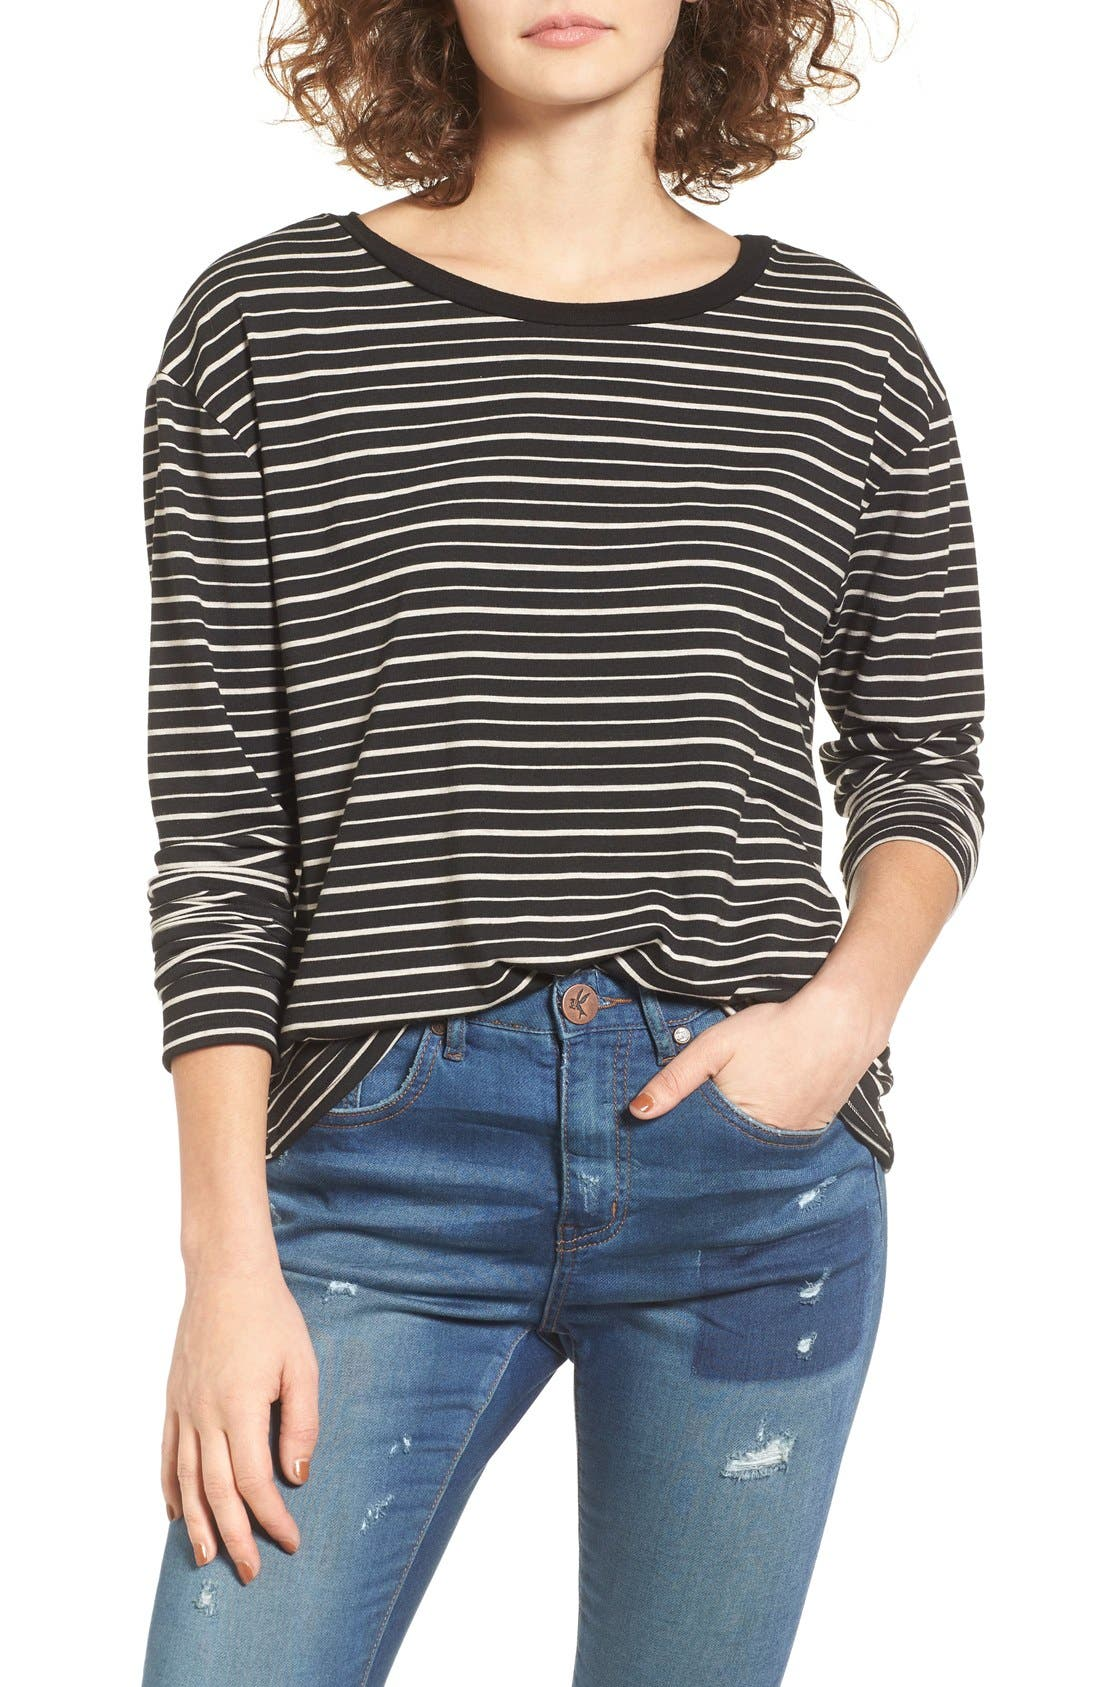 Alternate Image 1 Selected - Socialite Stripe Tee